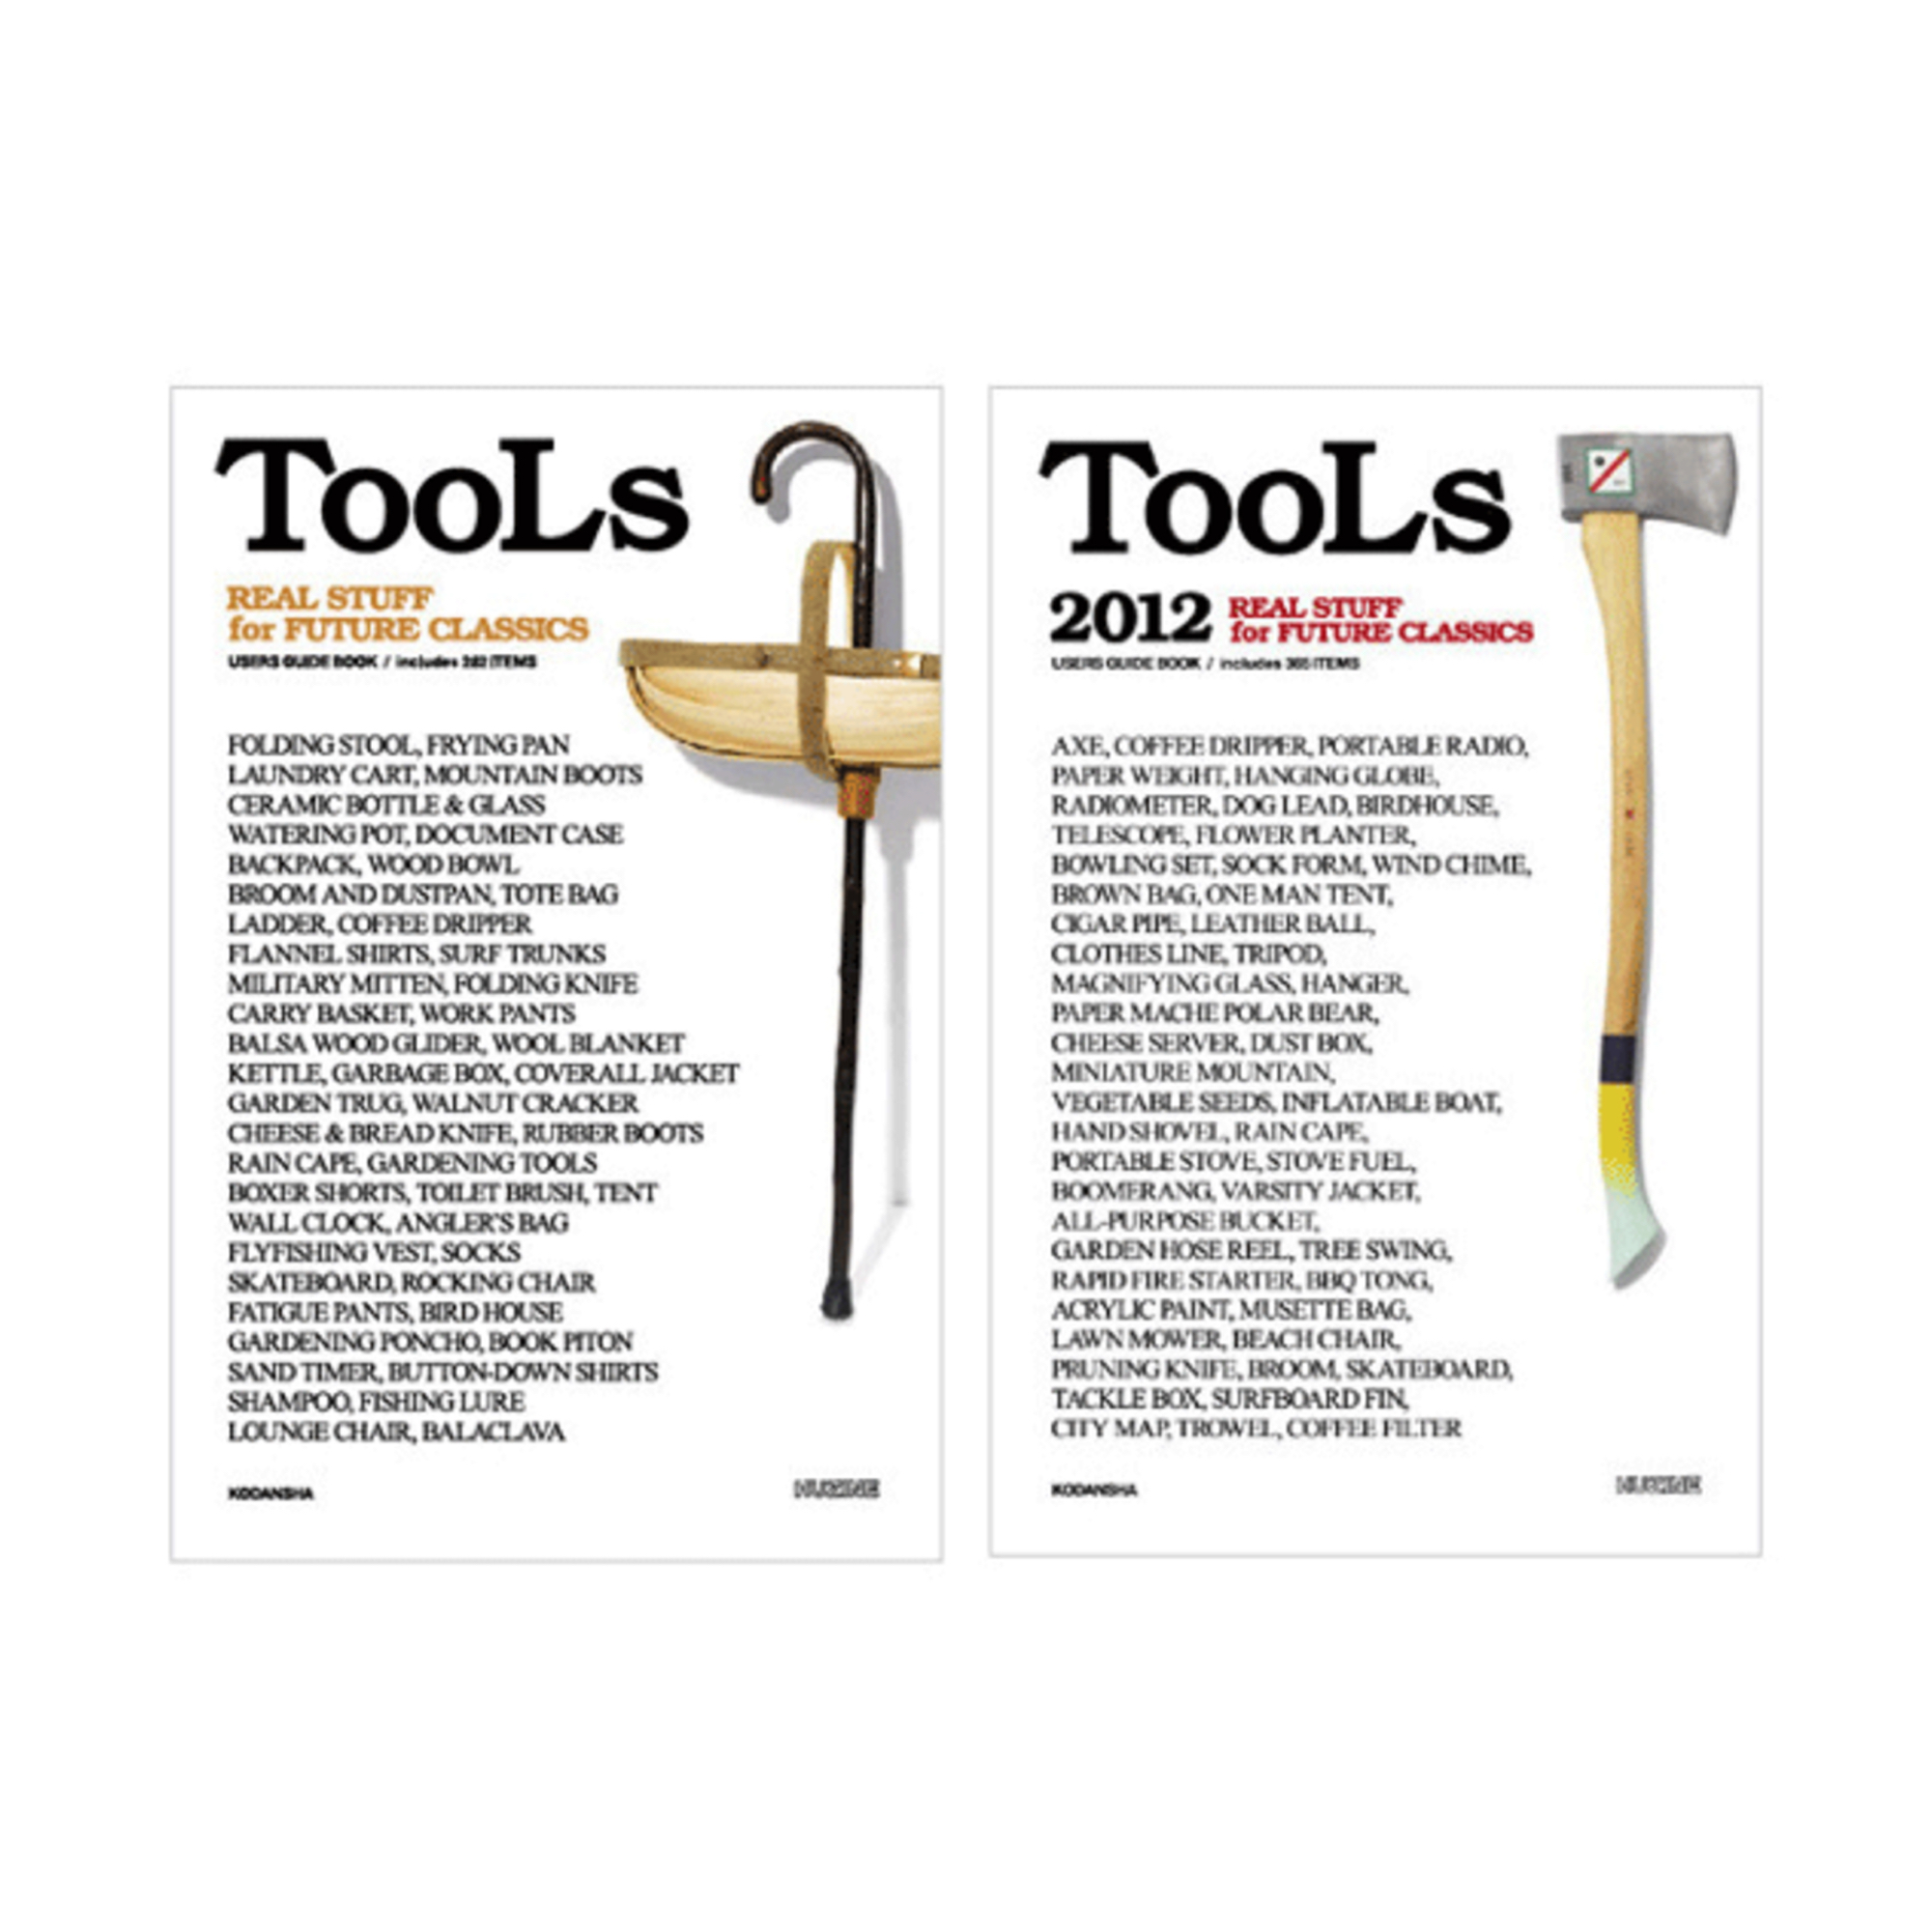 Tools - Real stuff for future classics